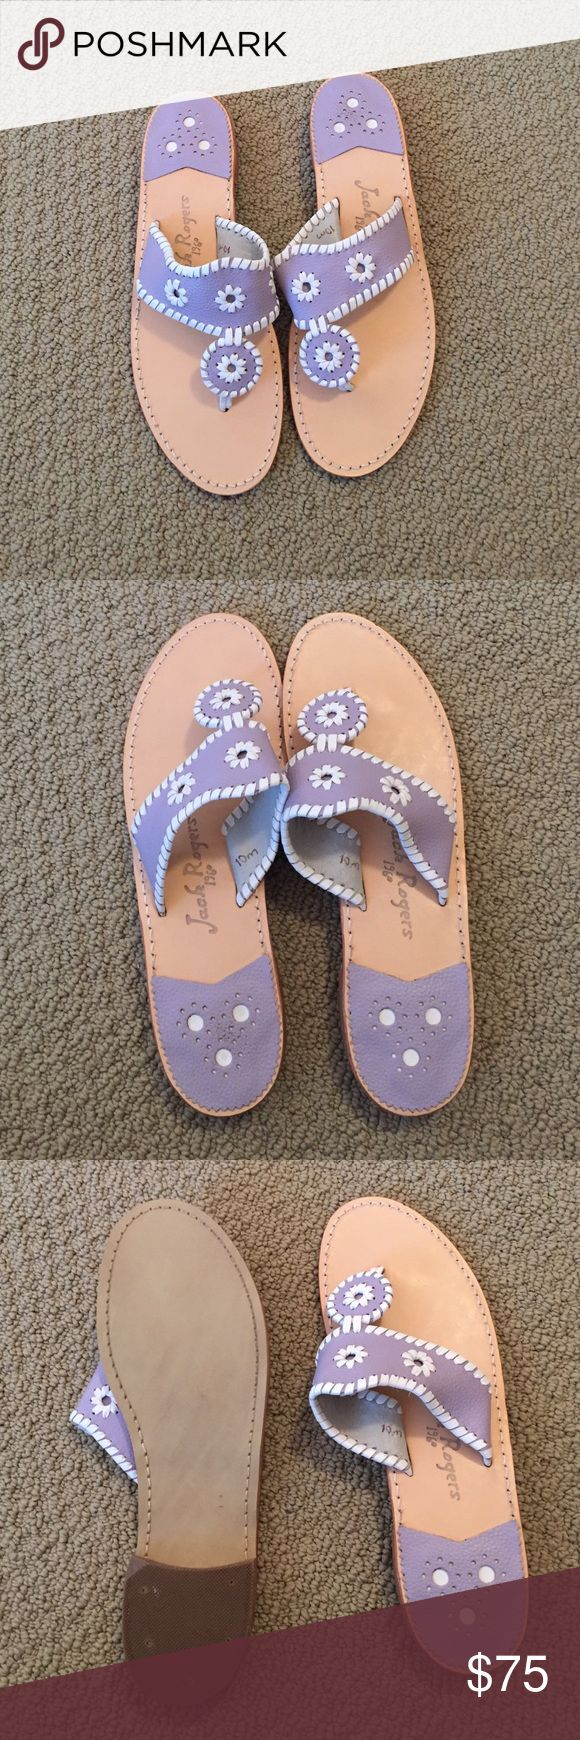 Jack Rogers Sandals Lavender and white colored size 10m sandals Jack Rogers Shoes Sandals